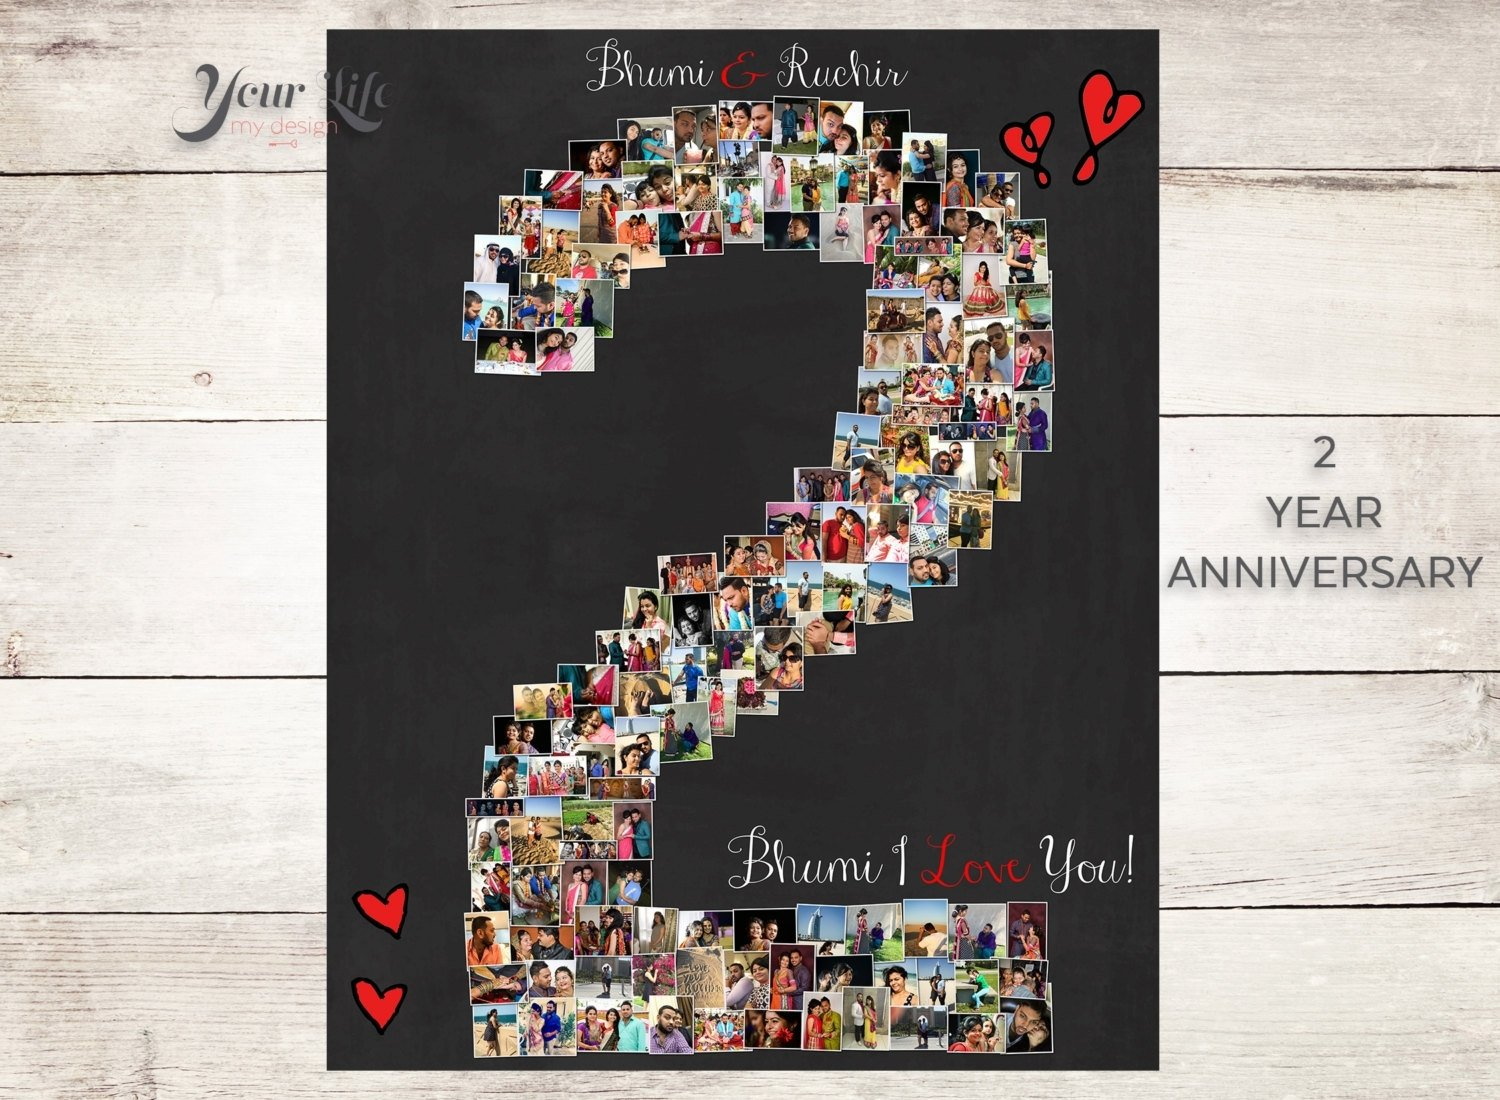 10 Spectacular 2 Year Anniversary Ideas For Girlfriend personalized anniversary present ideas for guy wedding anniversary 2020